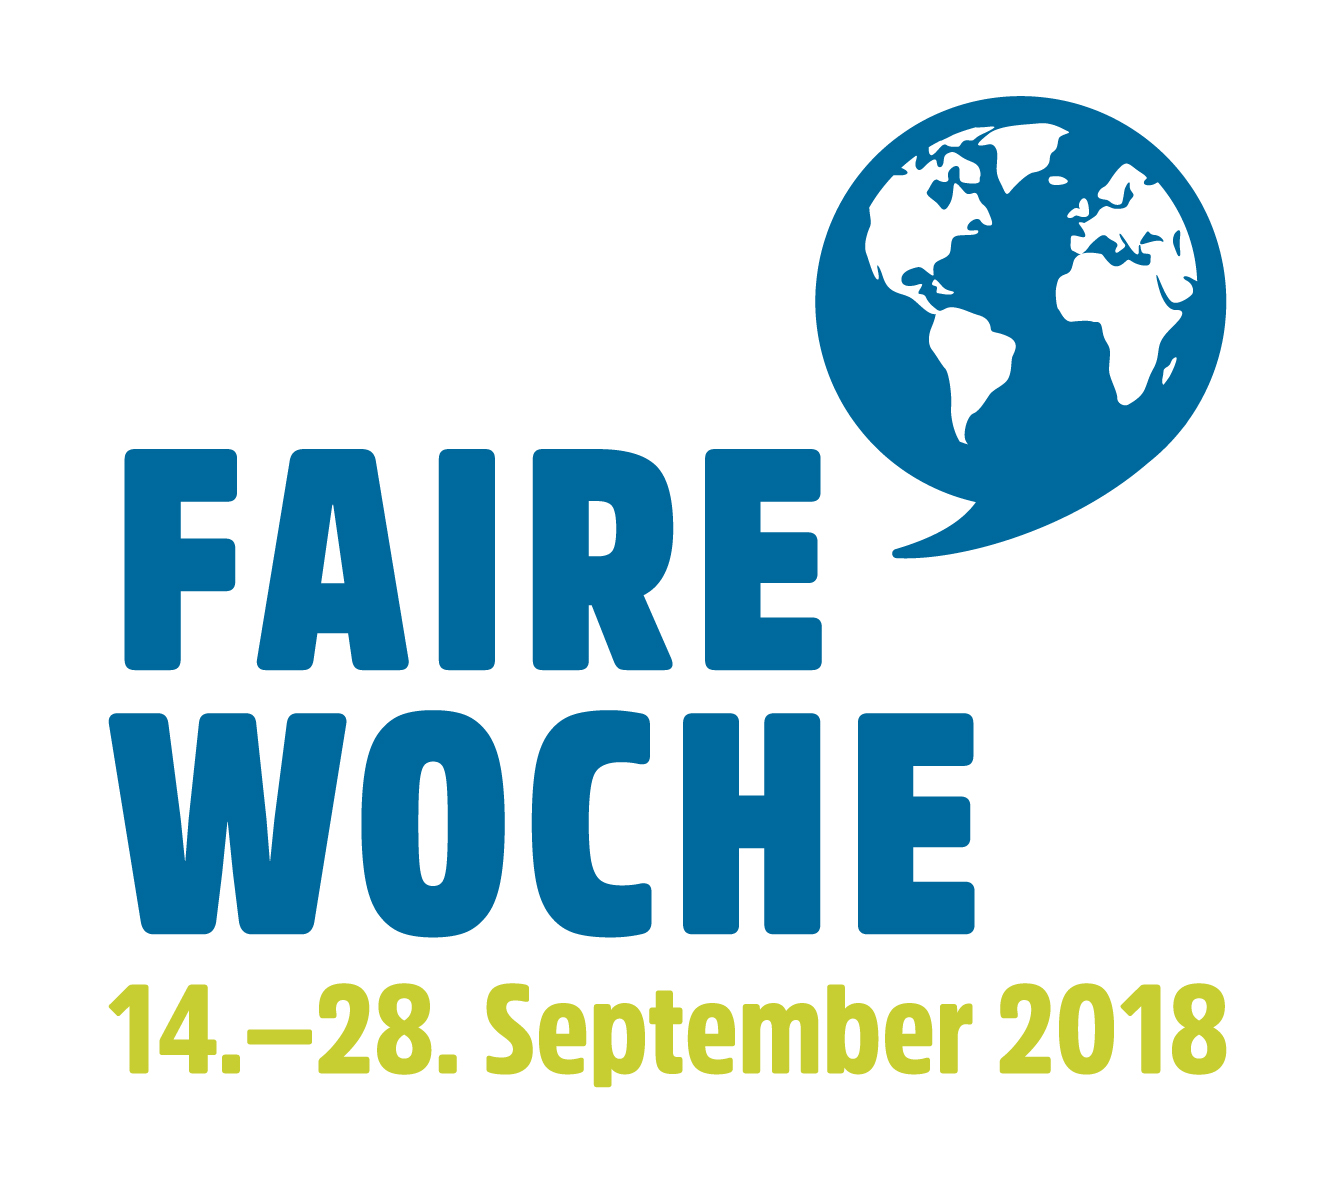 https://www.faire-woche.de/fileadmin/user_upload/media/service/materialien_zum_download/Logos/Logo_FW_02_300.jpg